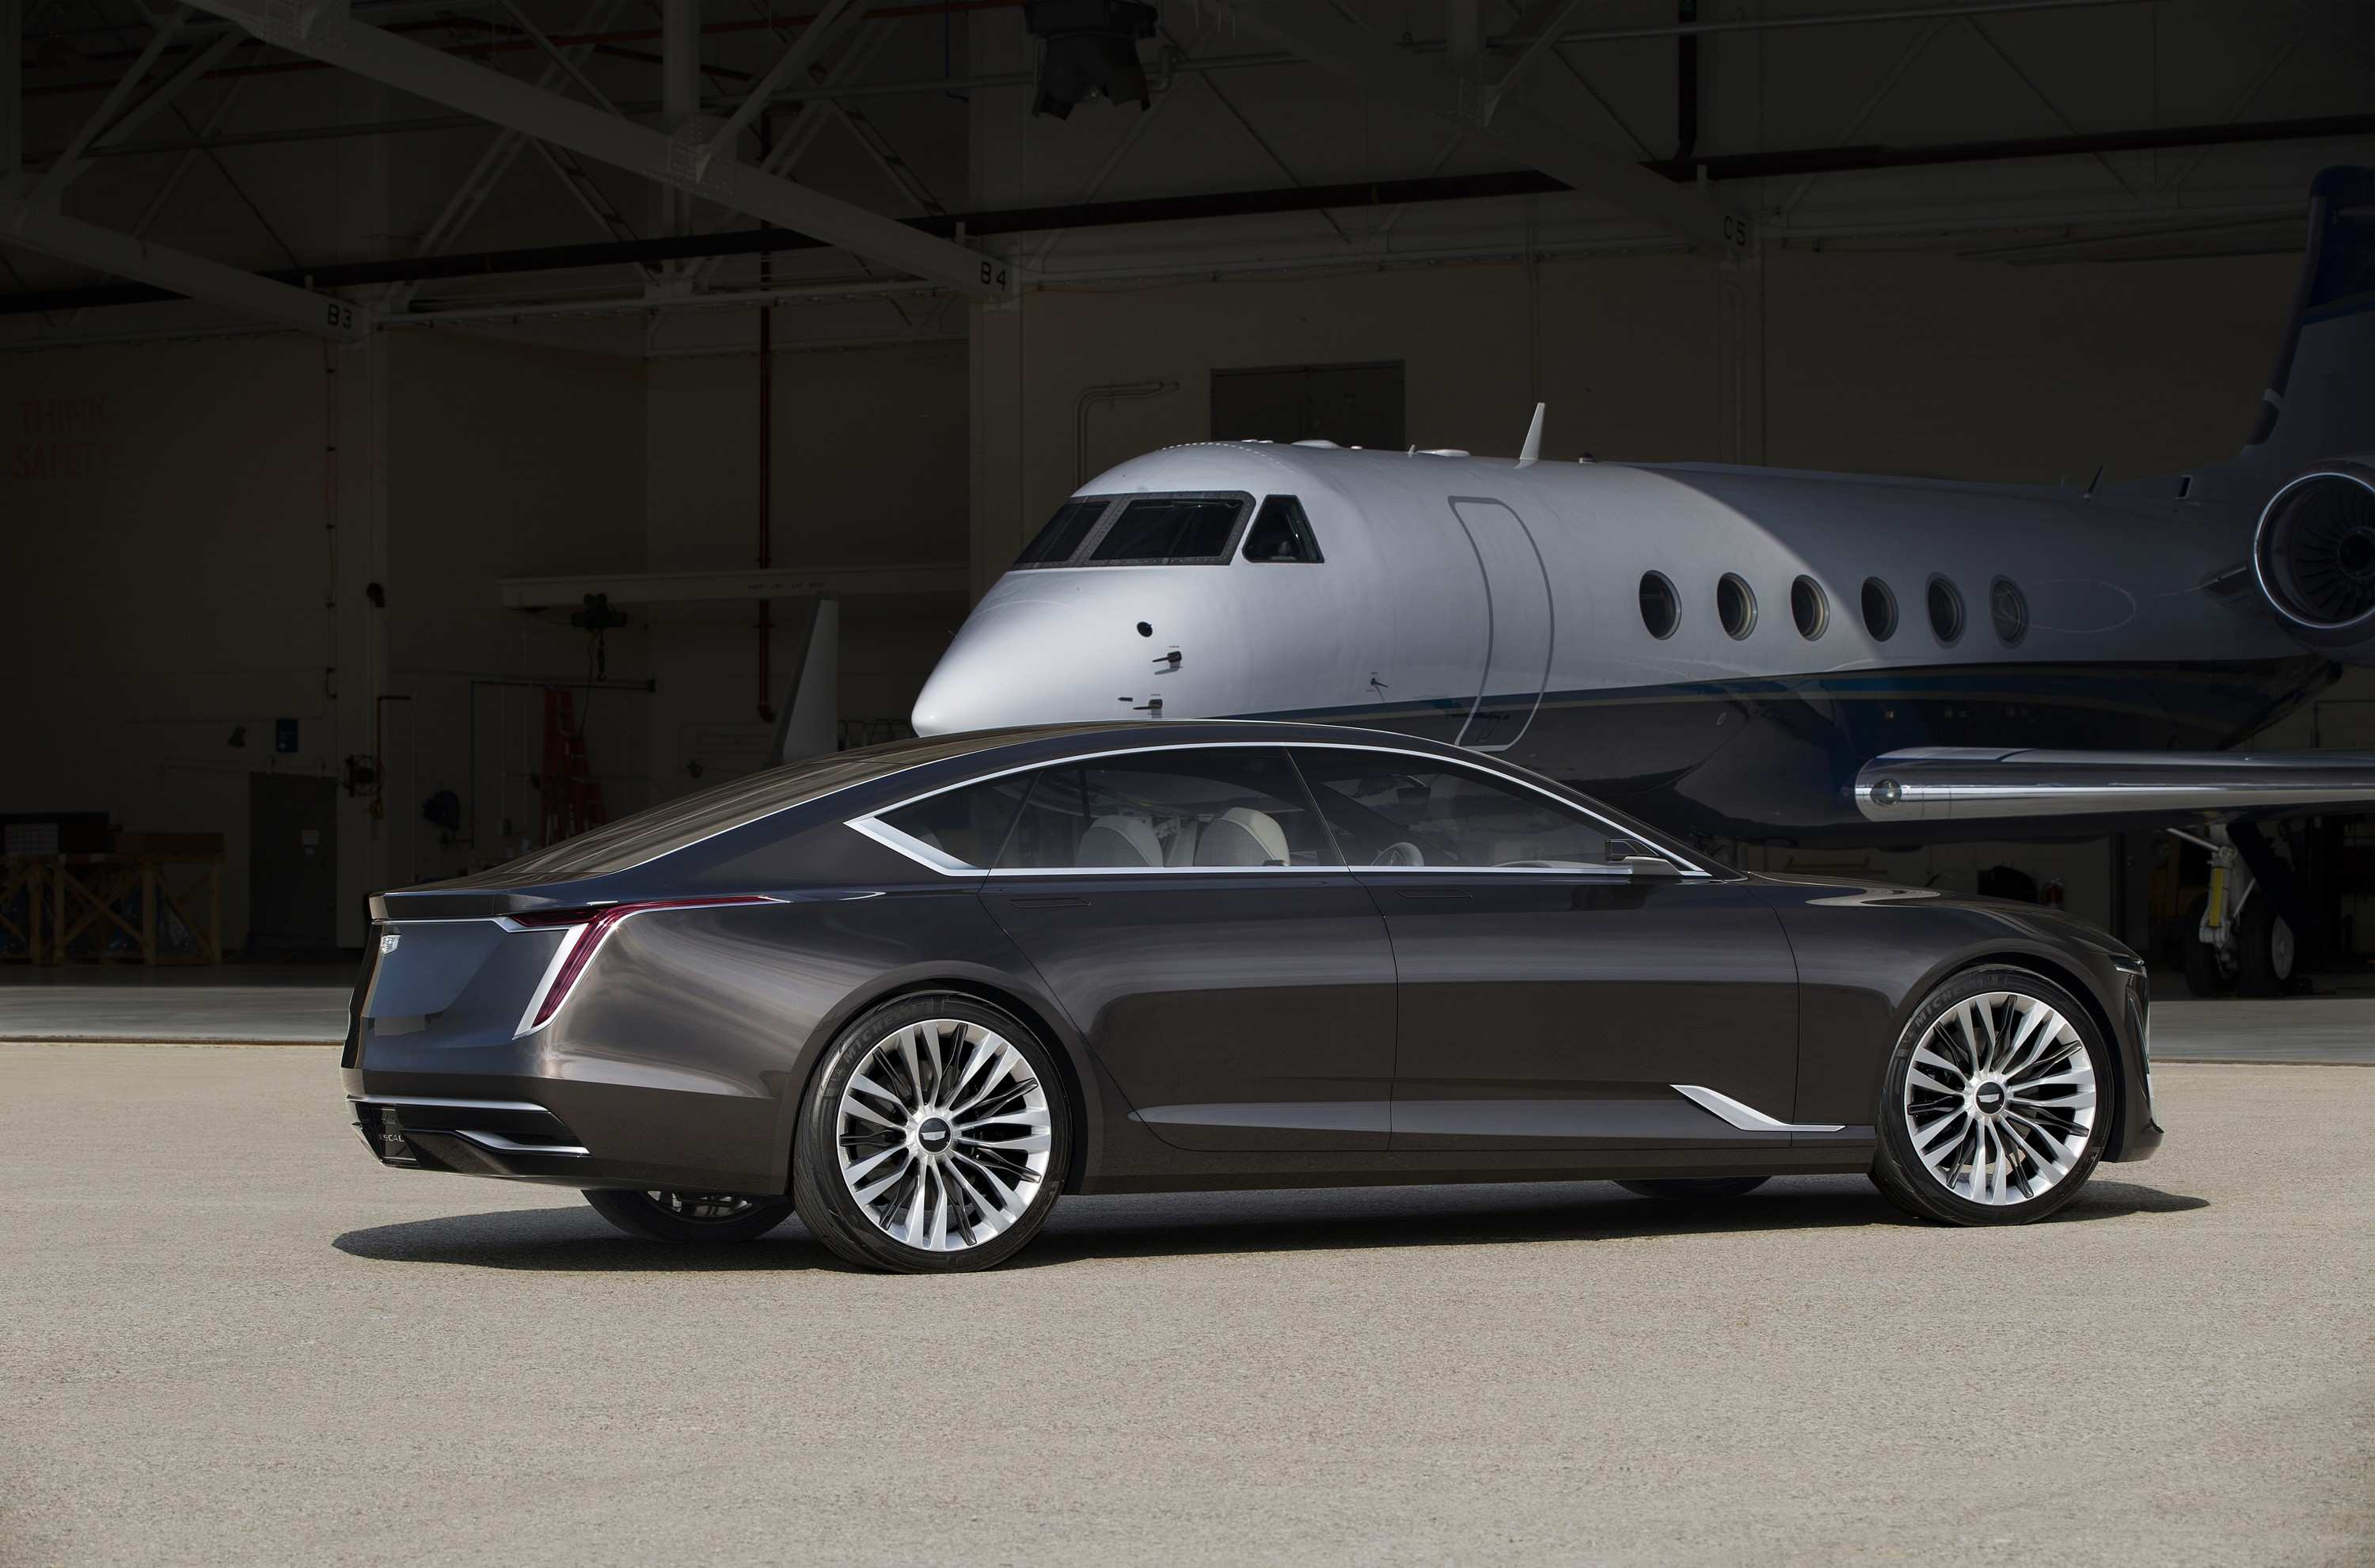 43 All New 2020 Cadillac LTS New Concept